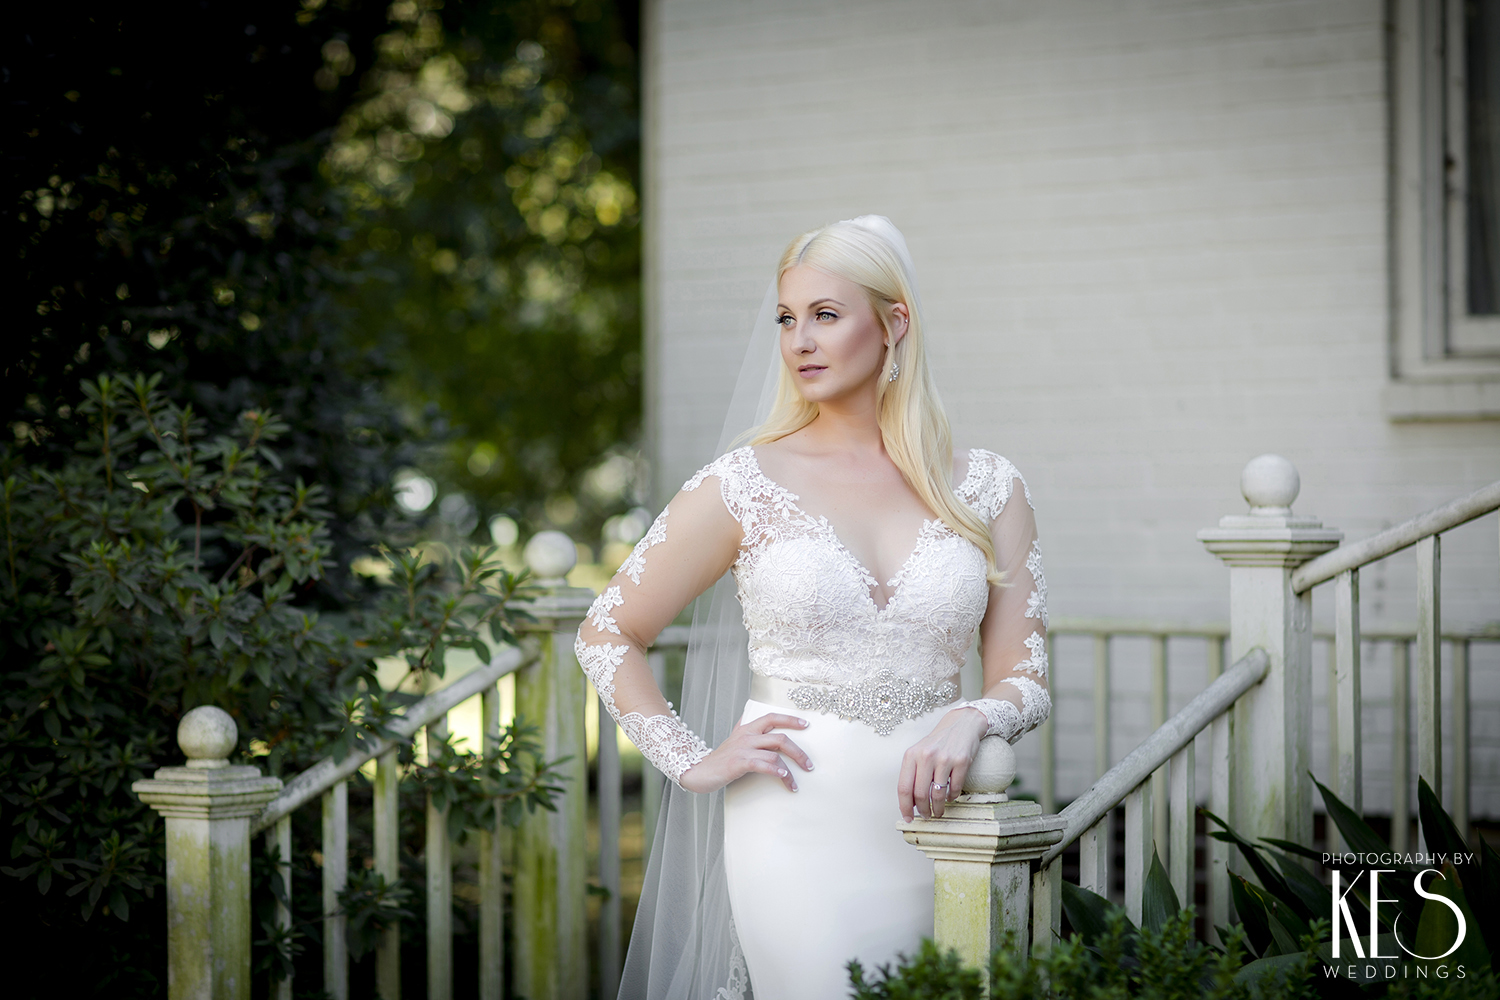 Marlsgate_Bridals_KES_Weddings_4.JPG